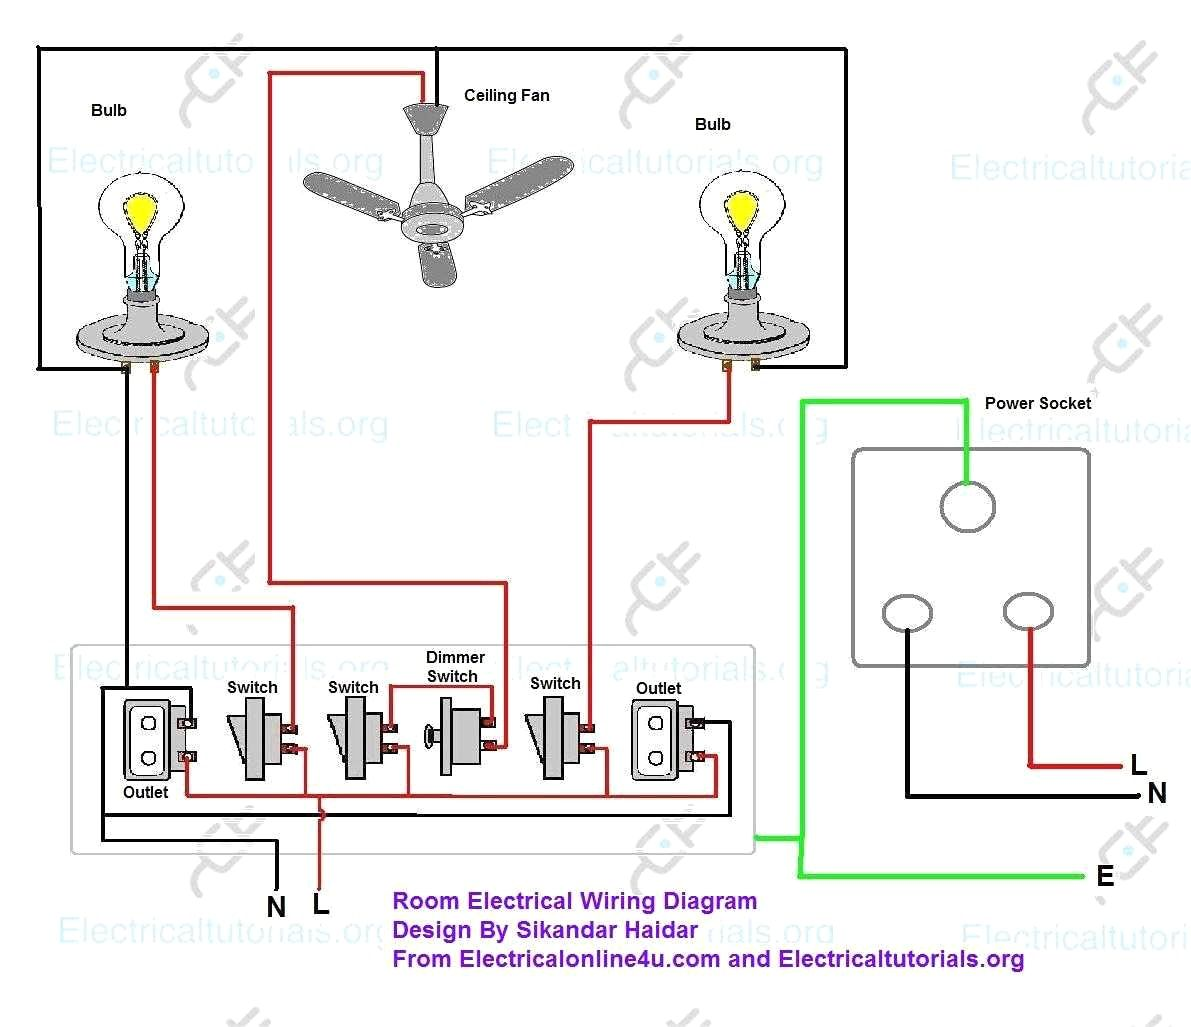 Electrical Wiring Diagram For House Floor Plan Symbols Electrical 2628240334 Capturafoto Electrical